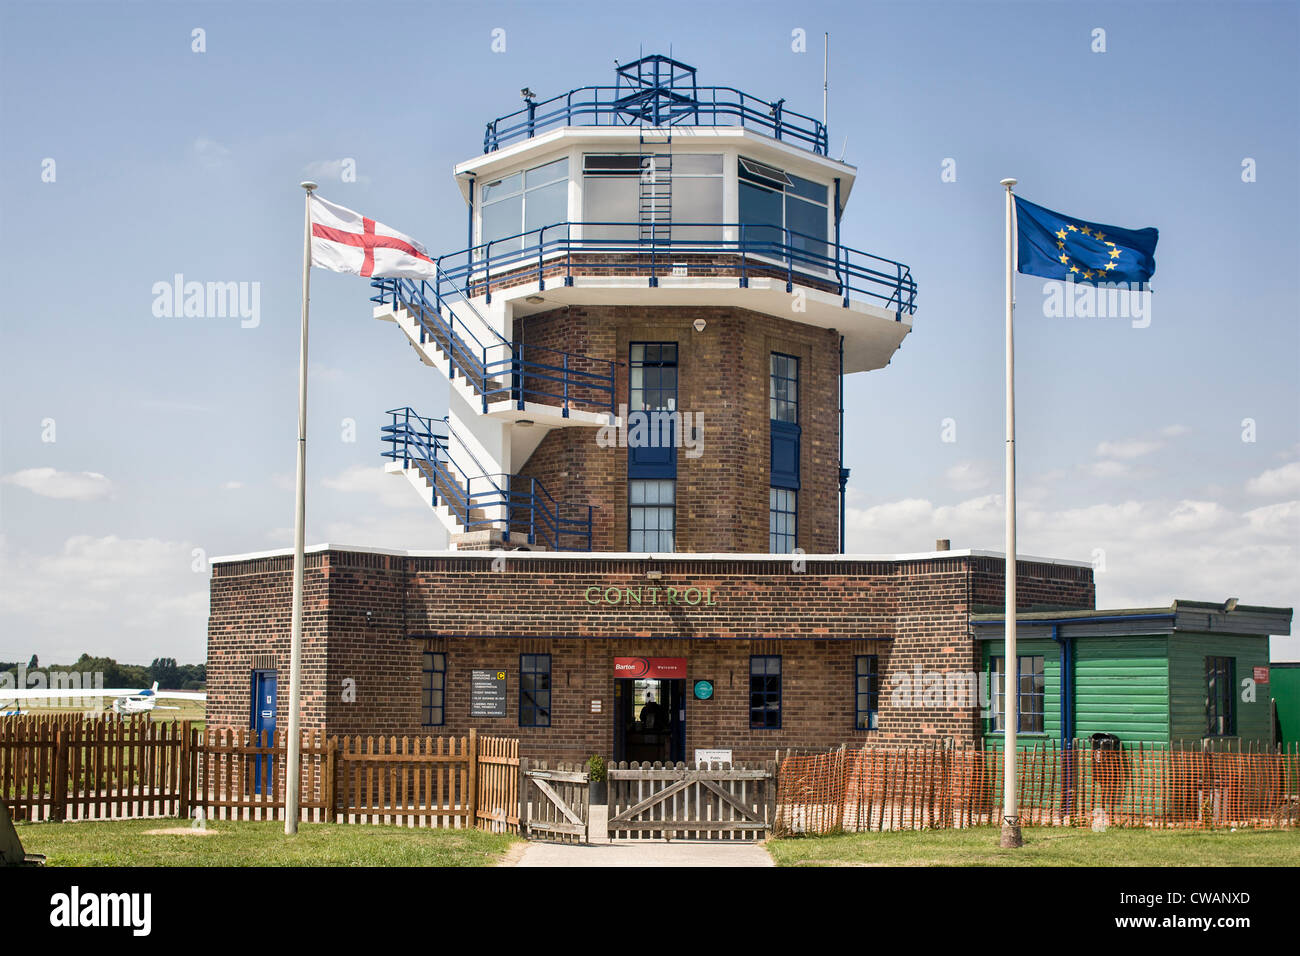 Control tower, Barton airfield - Stock Image